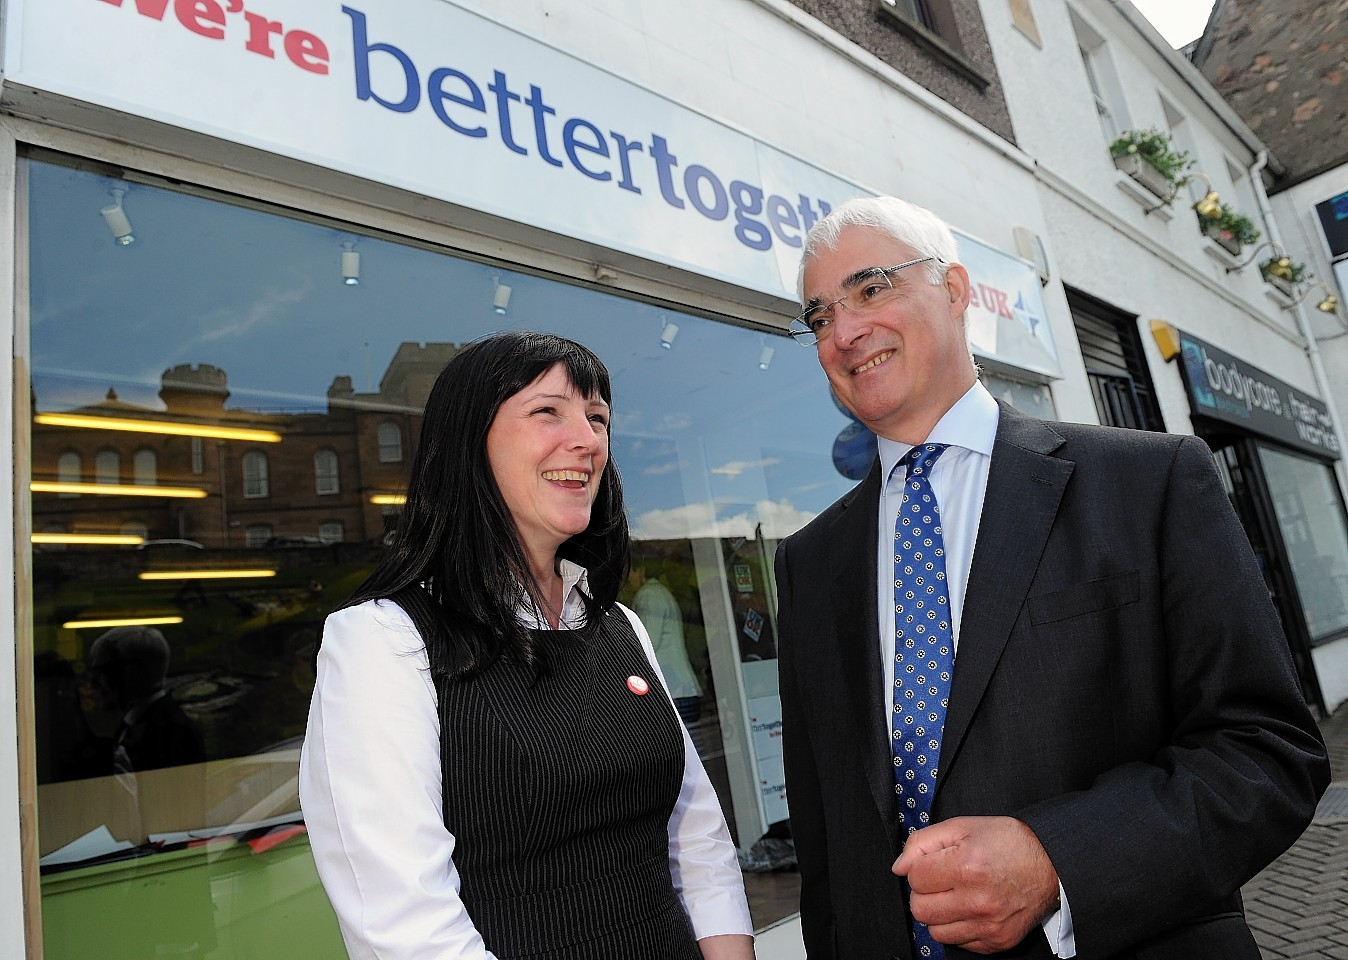 Better Together in Inverness